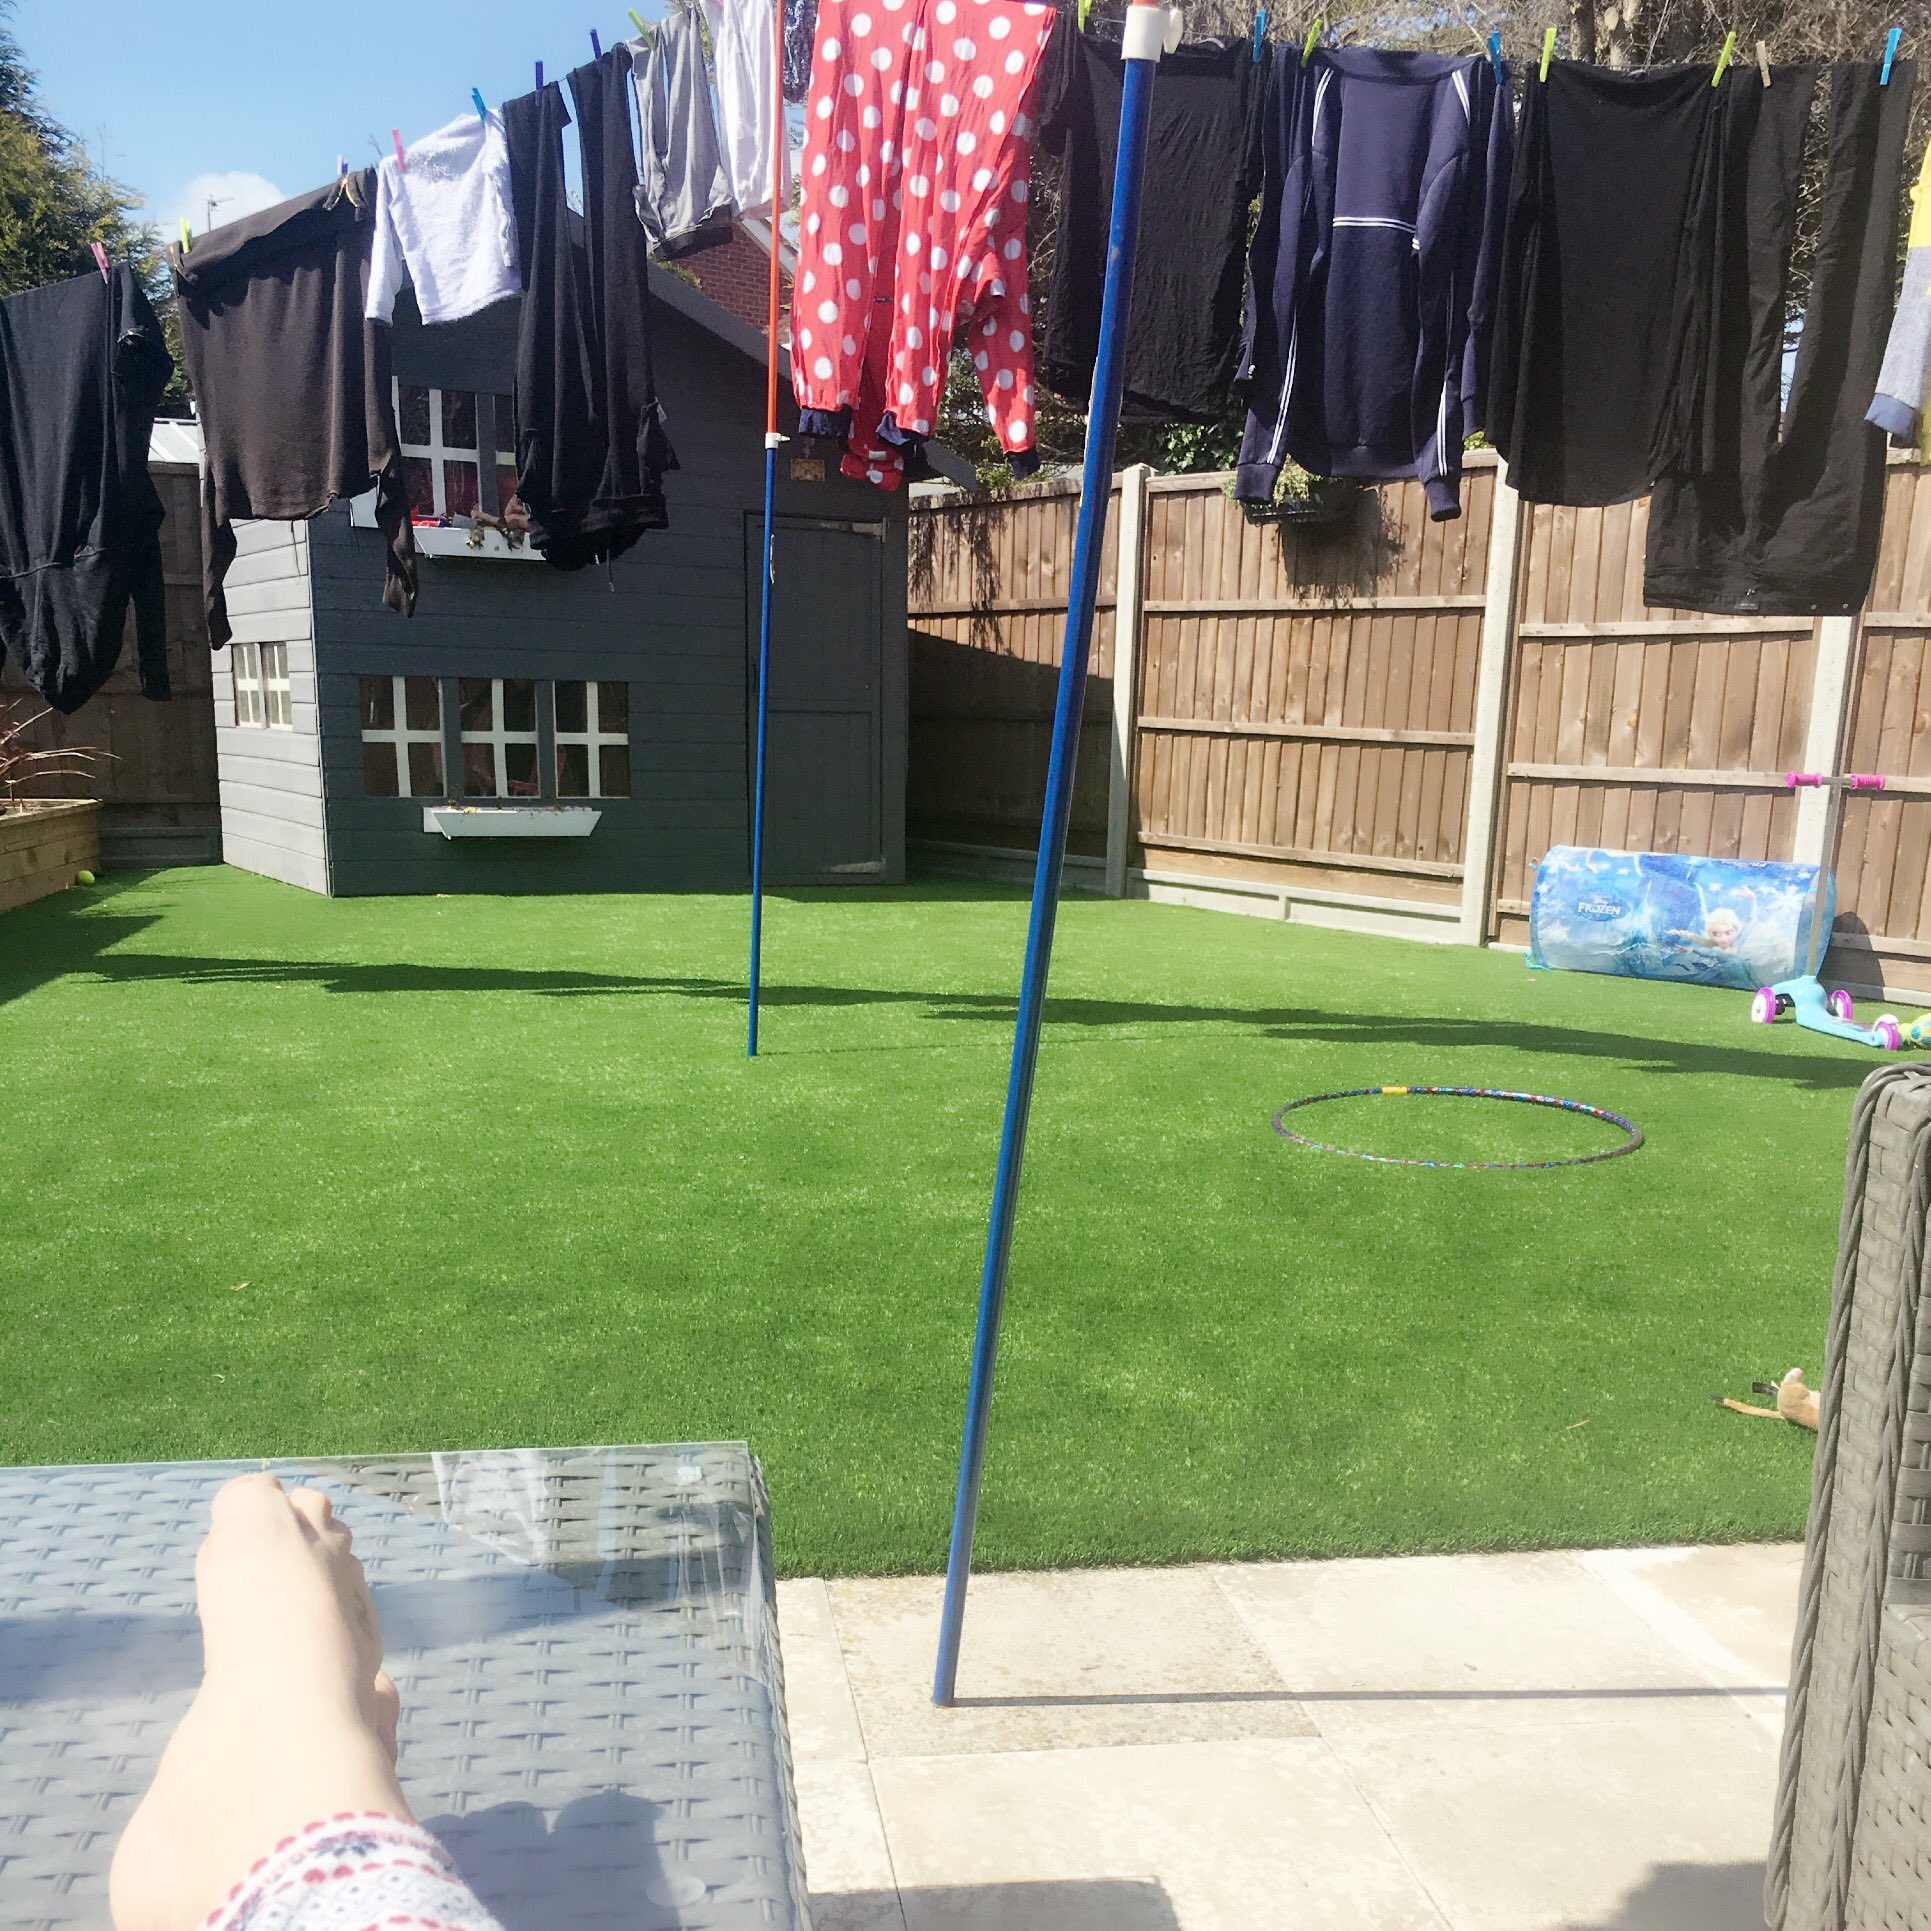 Chillin in the garden! Washing is out, sun is shining! Happy kid!! https://t.co/v5oKD55N71